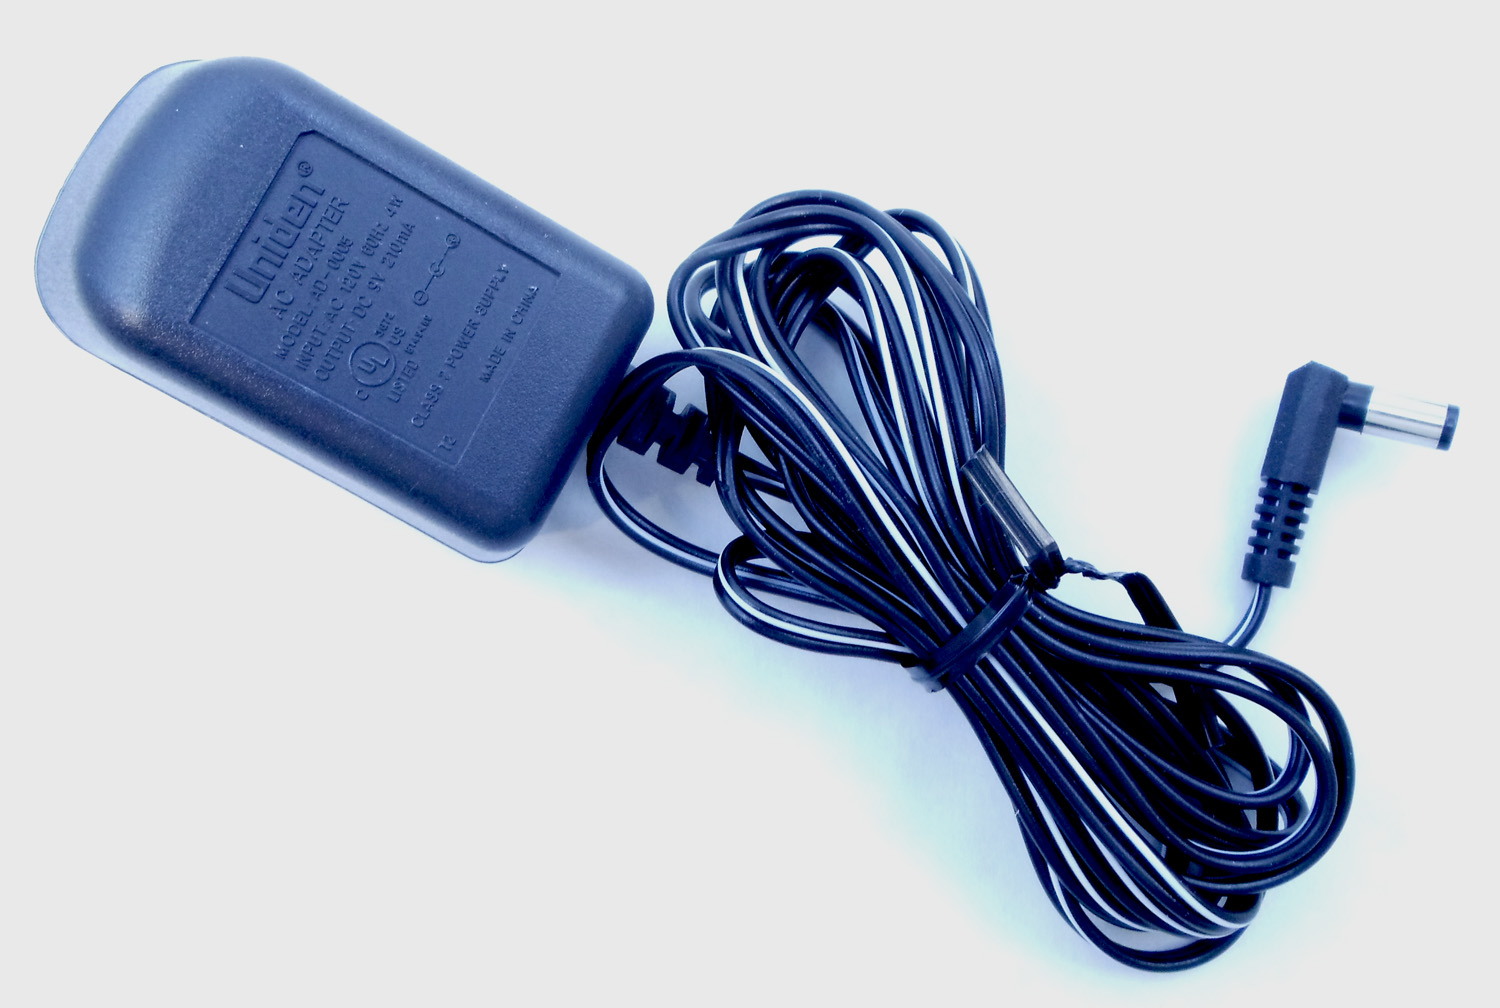 AD0005 - Uniden Replacement Wall Charger